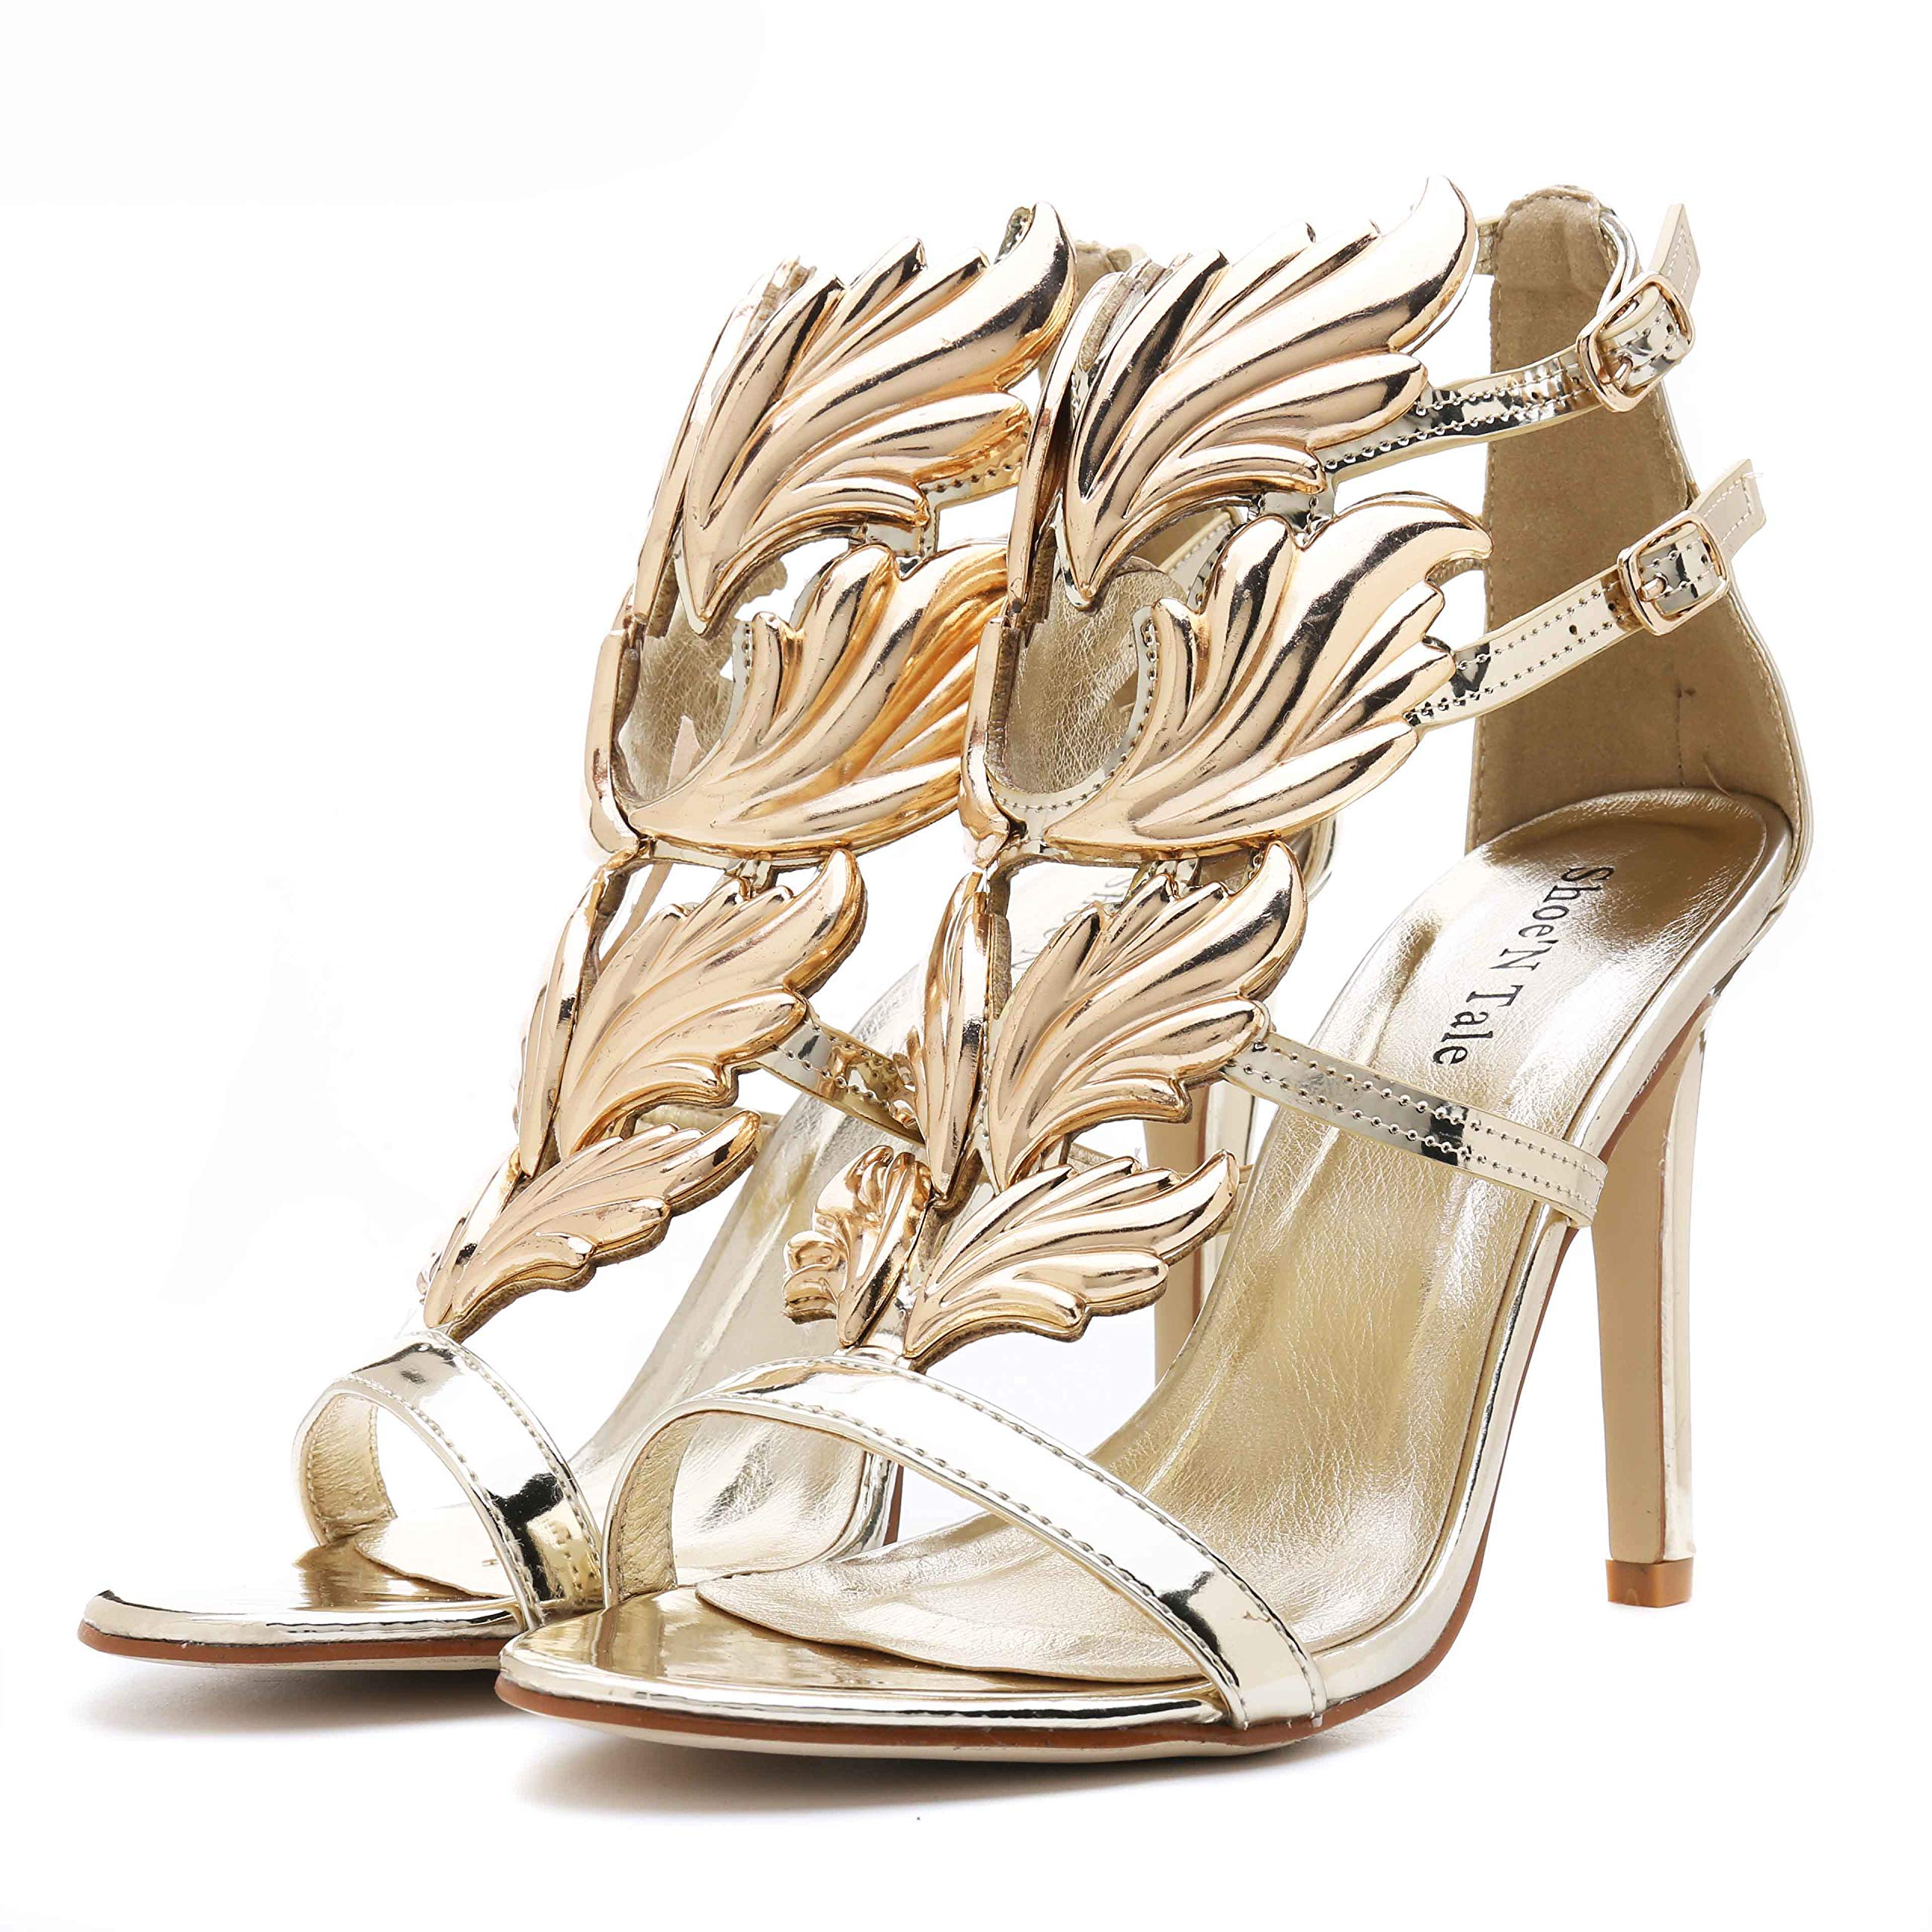 Shoe'N Tale Women's High Heel Gladiator Sandals Gold Flame Party Dress Stiletto Shoes